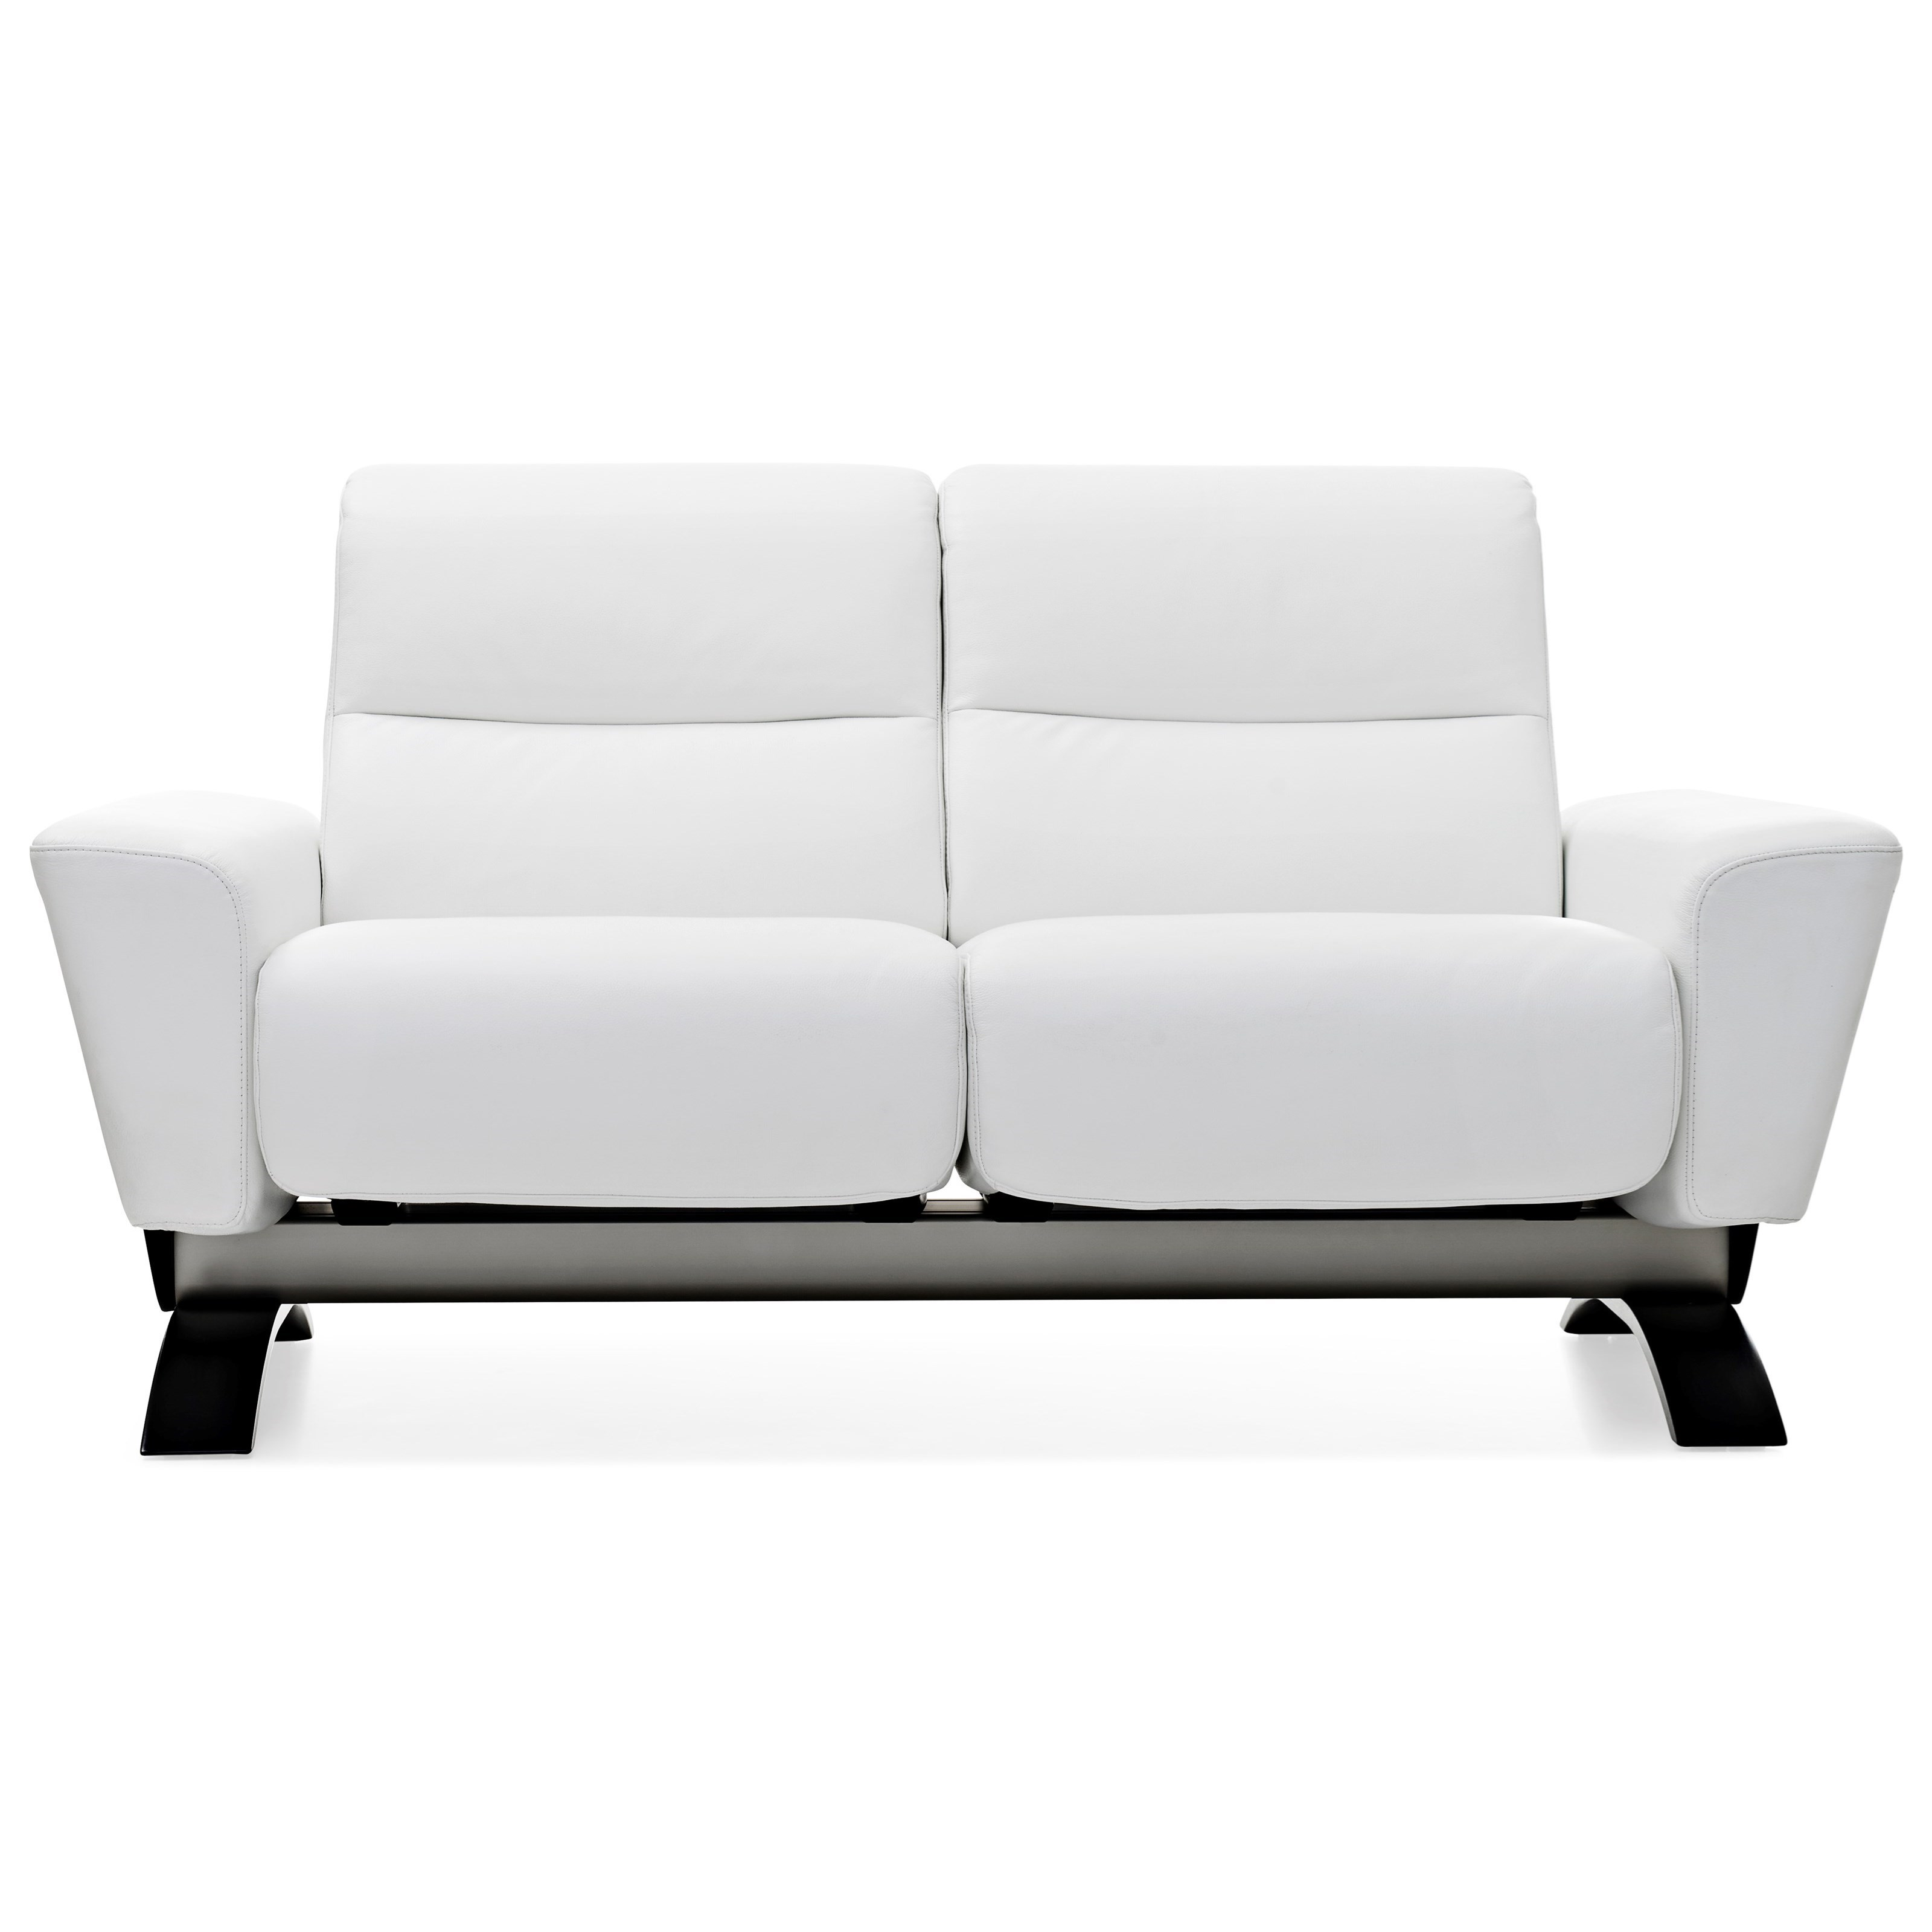 mission loveseat seat hope pid love chair amish and p mount